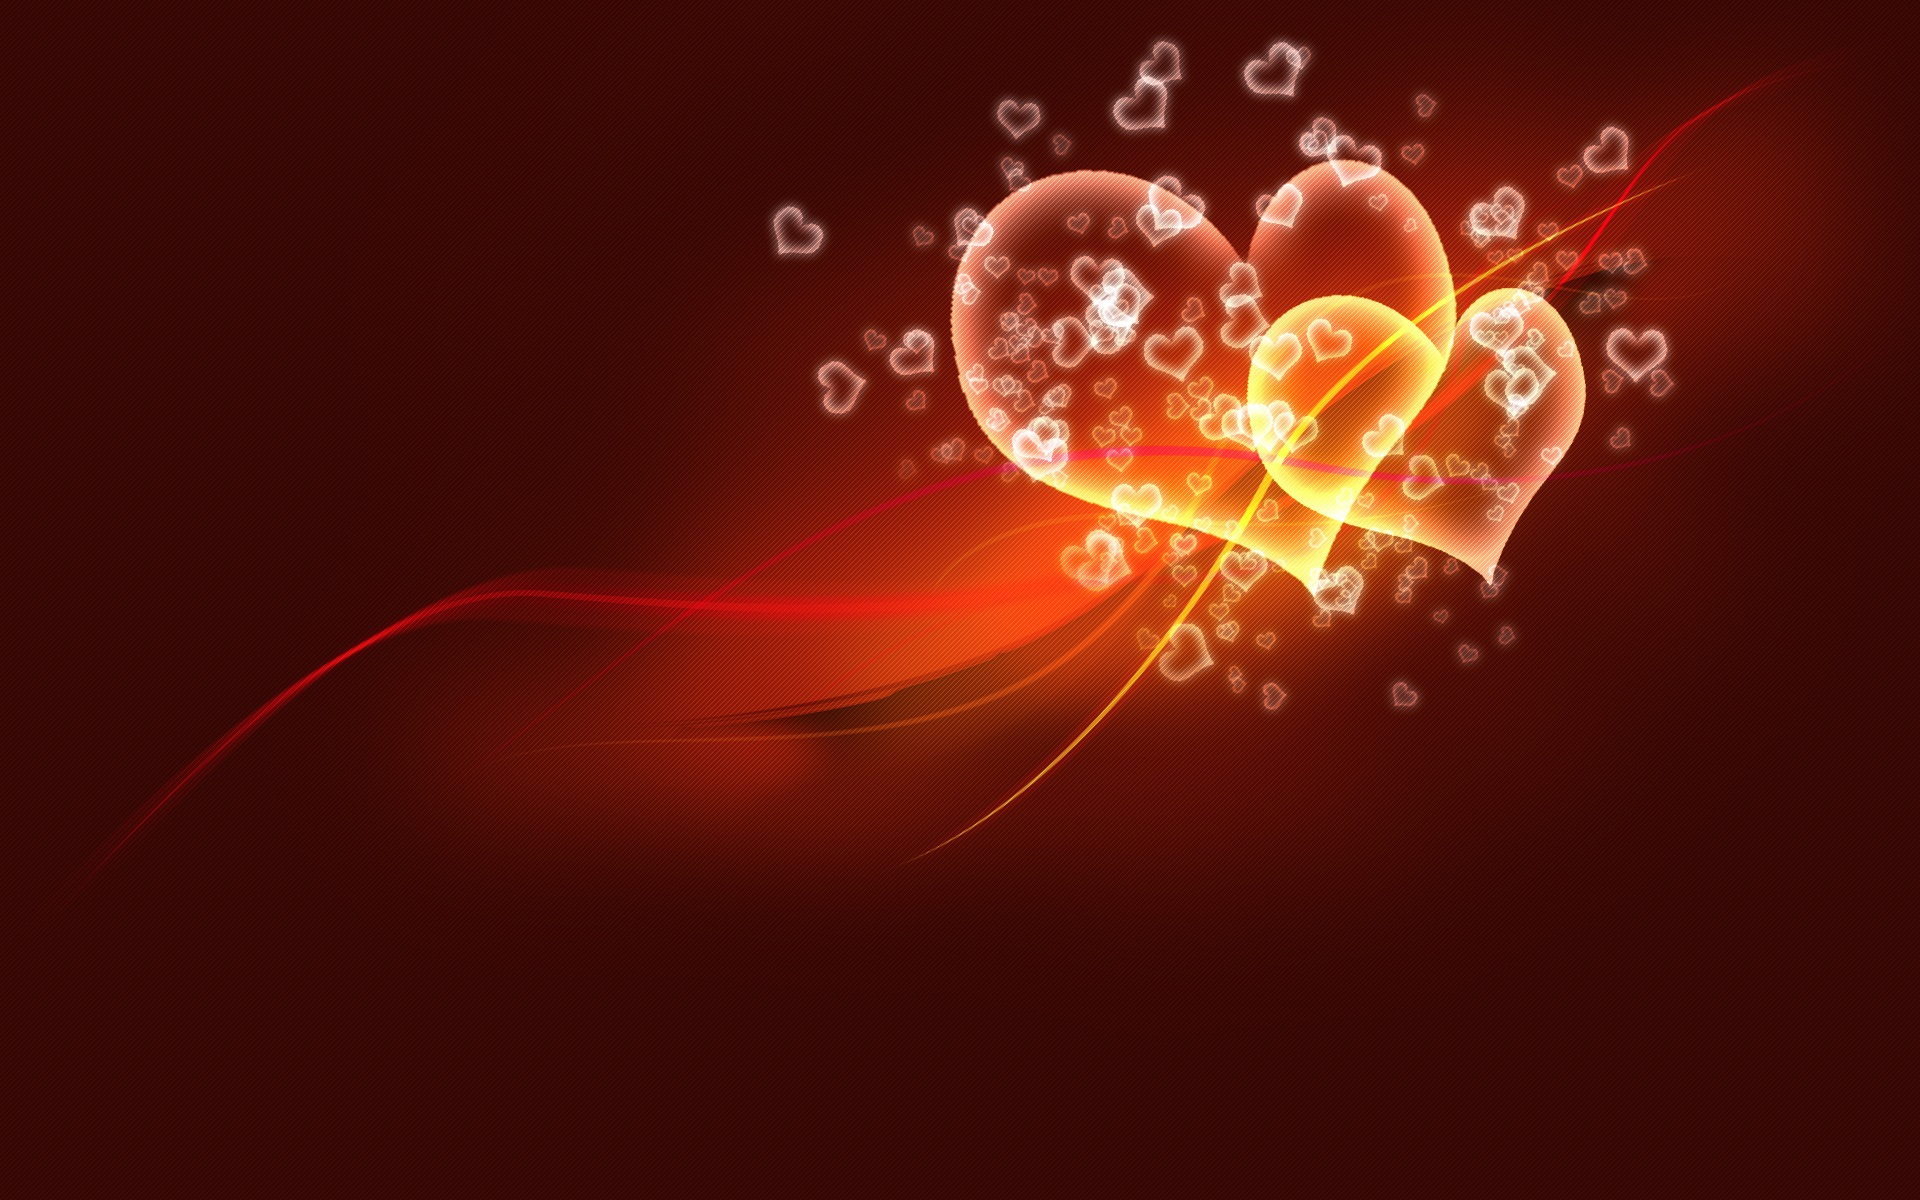 Valentine PPT Background Background for Powerpoint Program